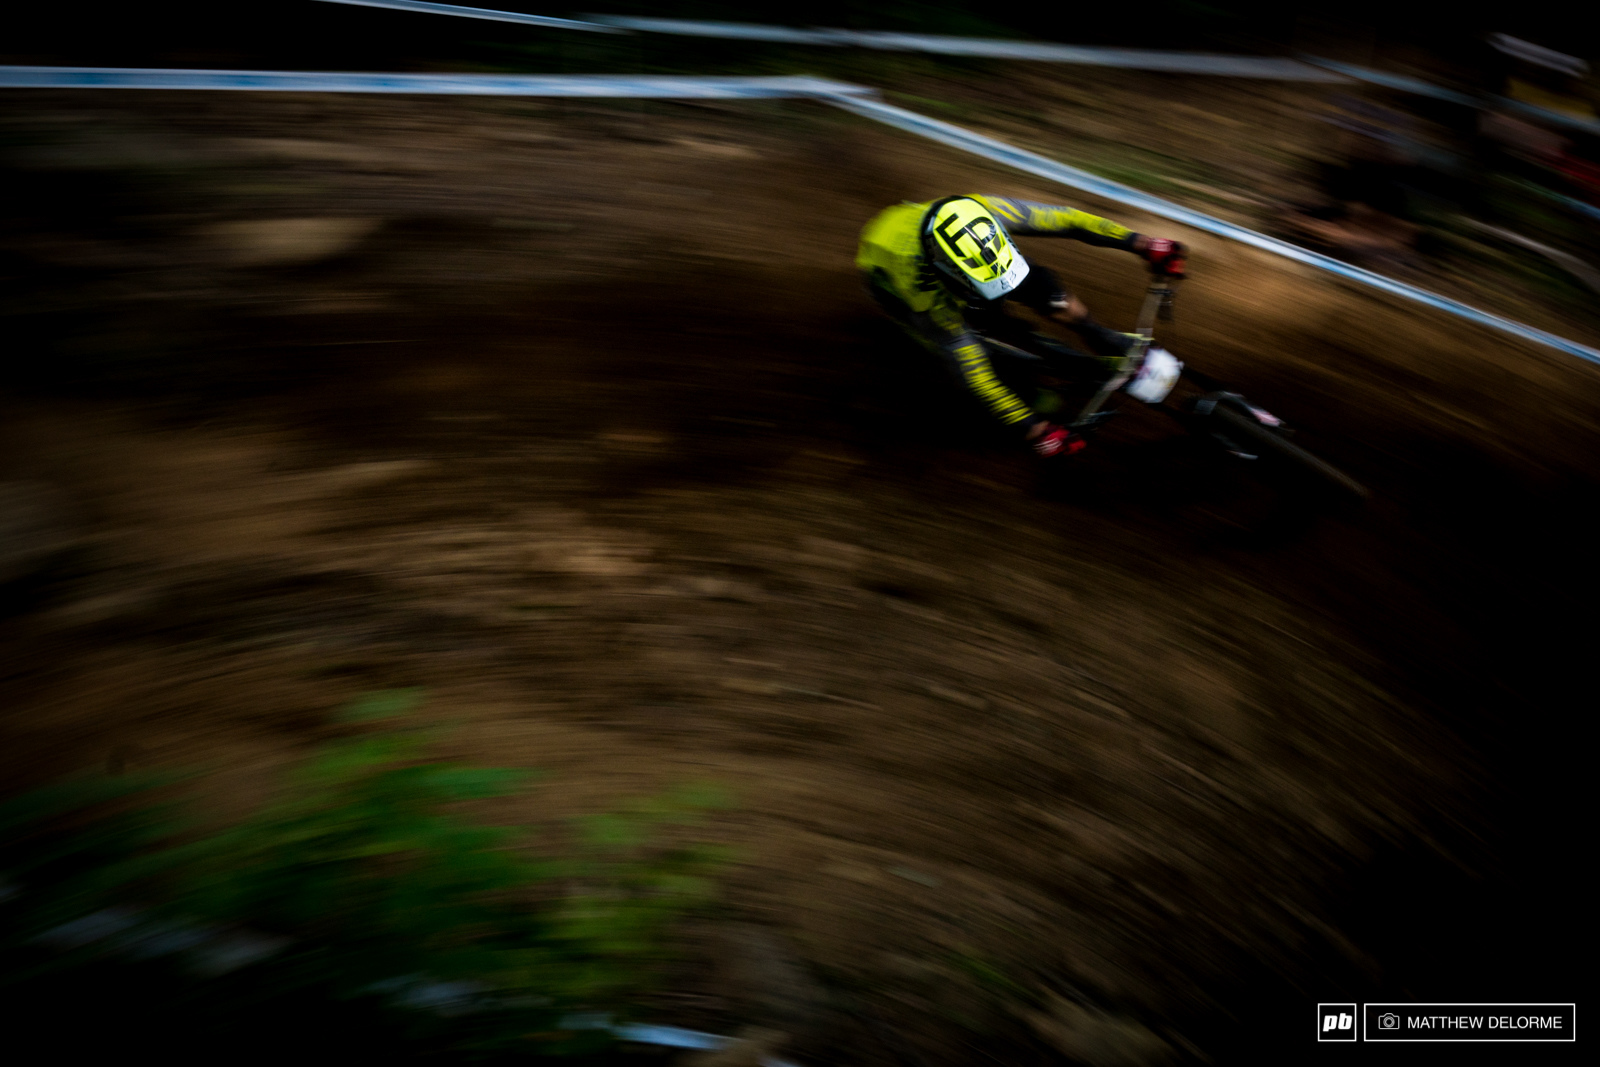 Remi Thirion slashing his way through the berms in the upper woods.